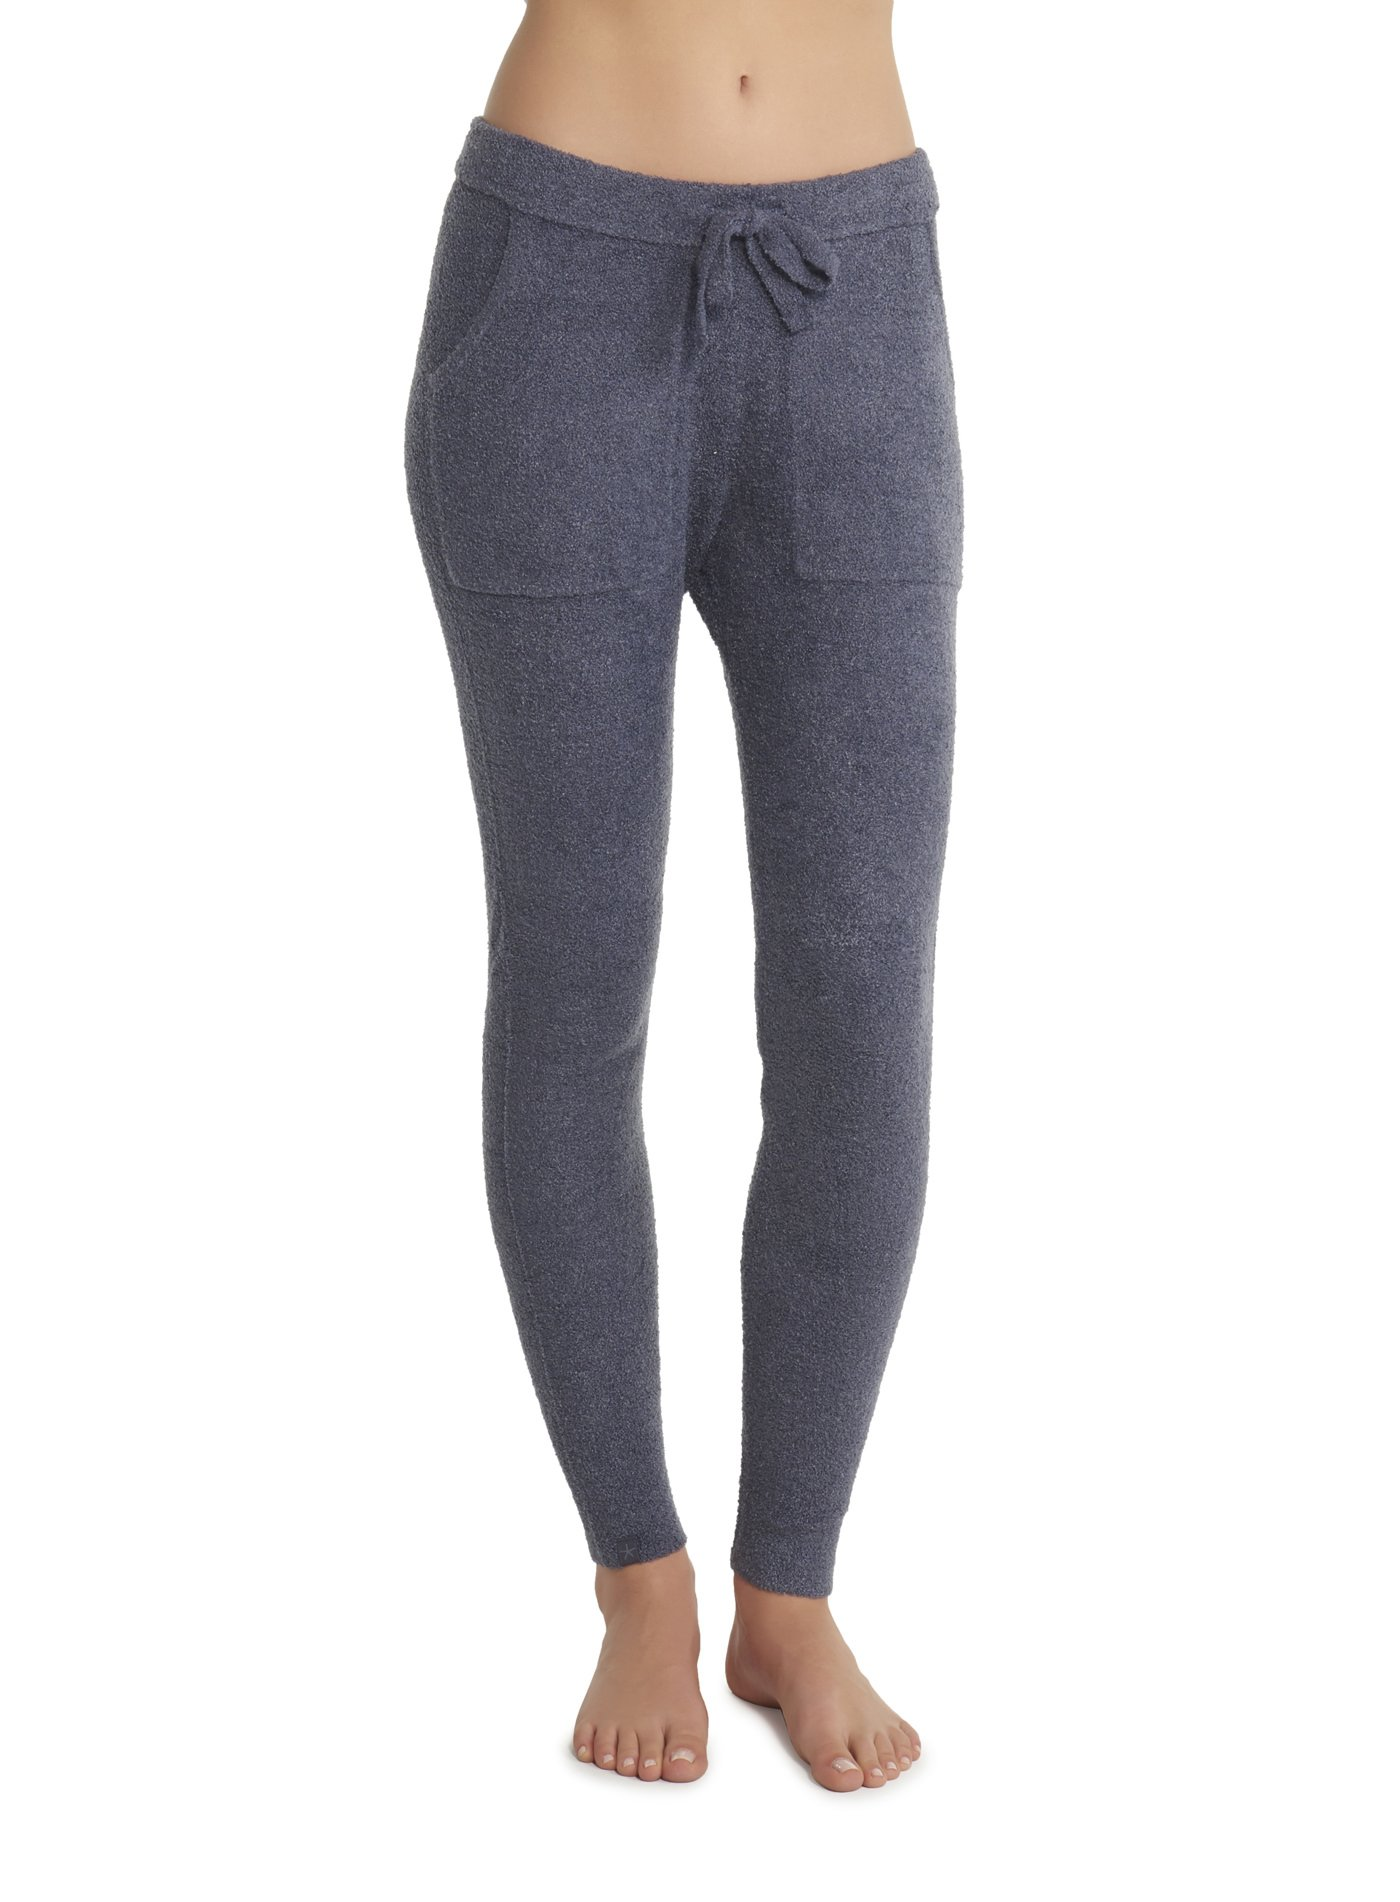 Barefoot Dreams CozyChic Lite Joggers Pants For Women With Pockets by Barefoot Dreams